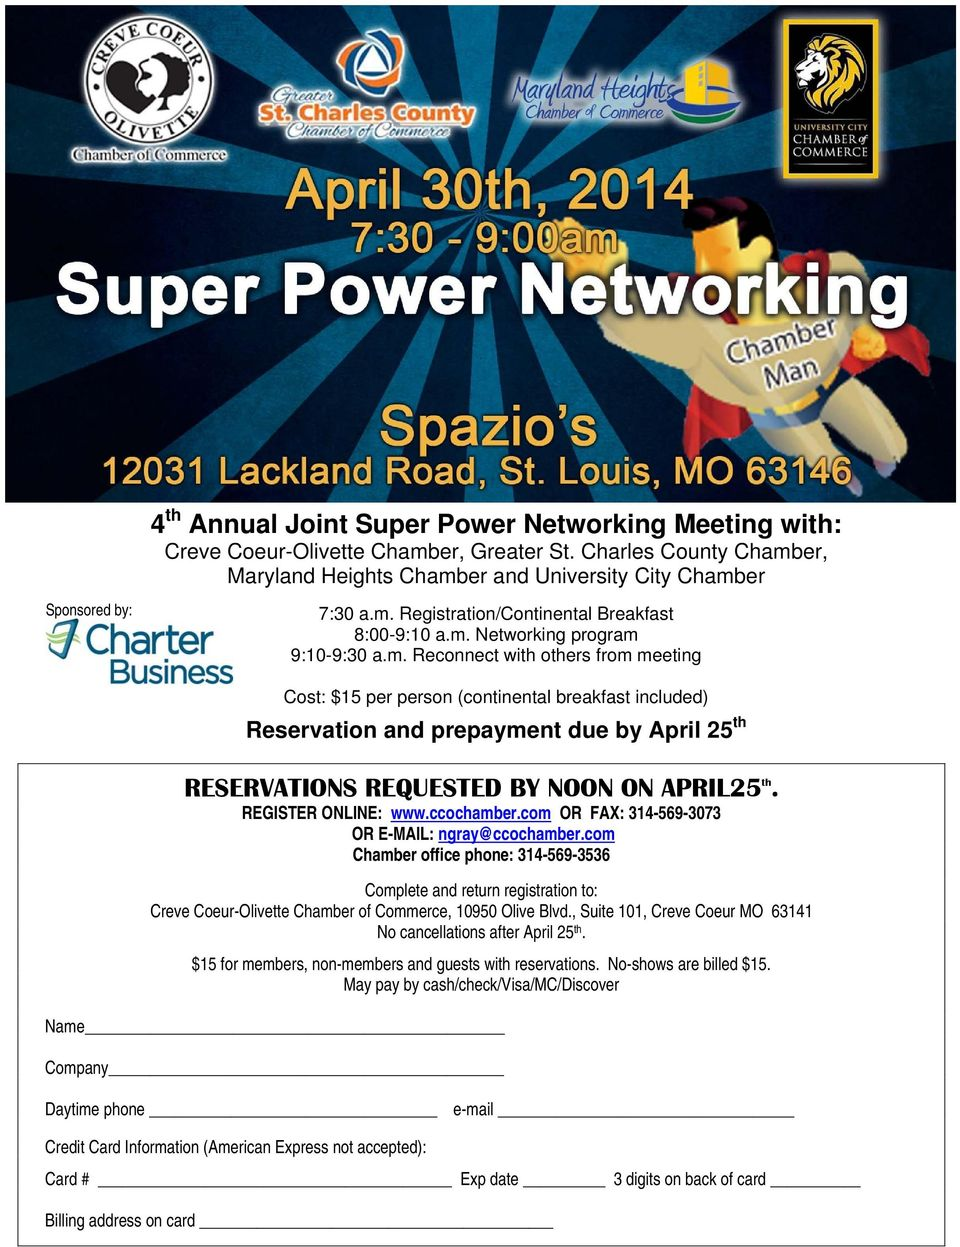 REGISTER ONLINE: www.ccochamber.com OR FAX: 314-569-3073 OR E-MAIL: ngray@ccochamber.